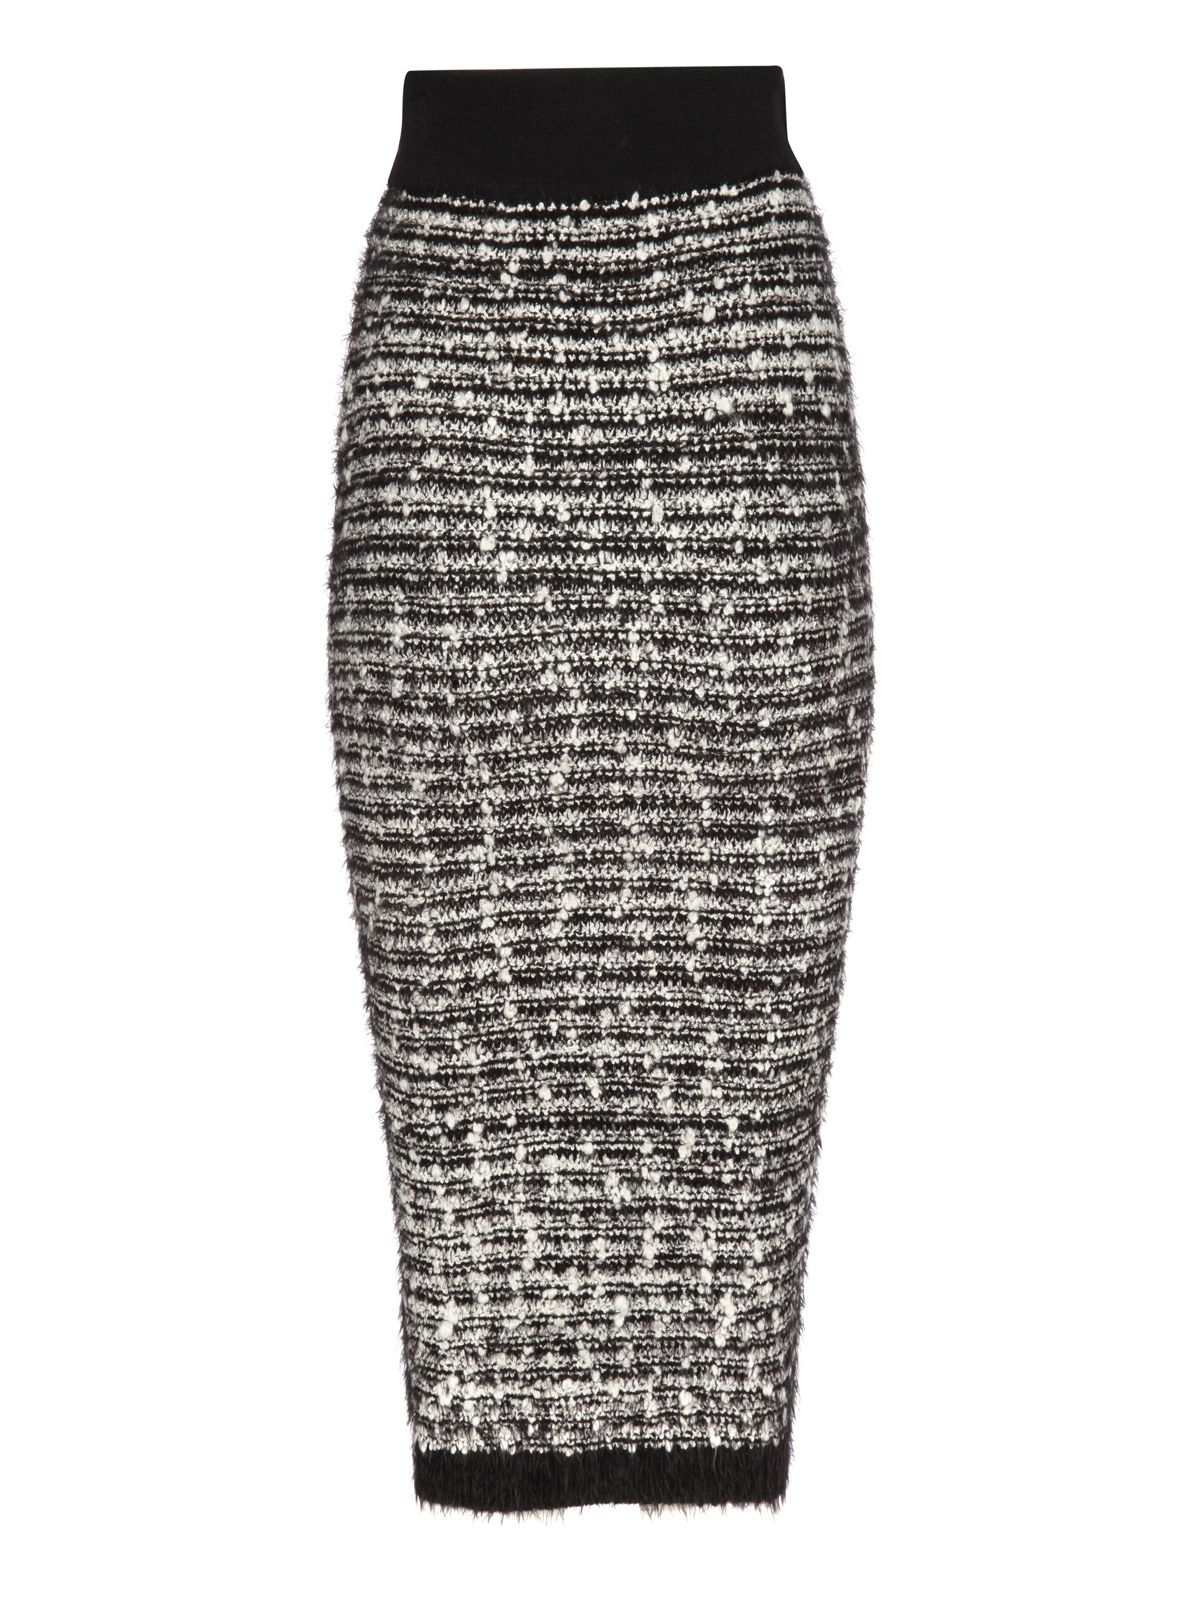 Knitted eyelash pencil skirt